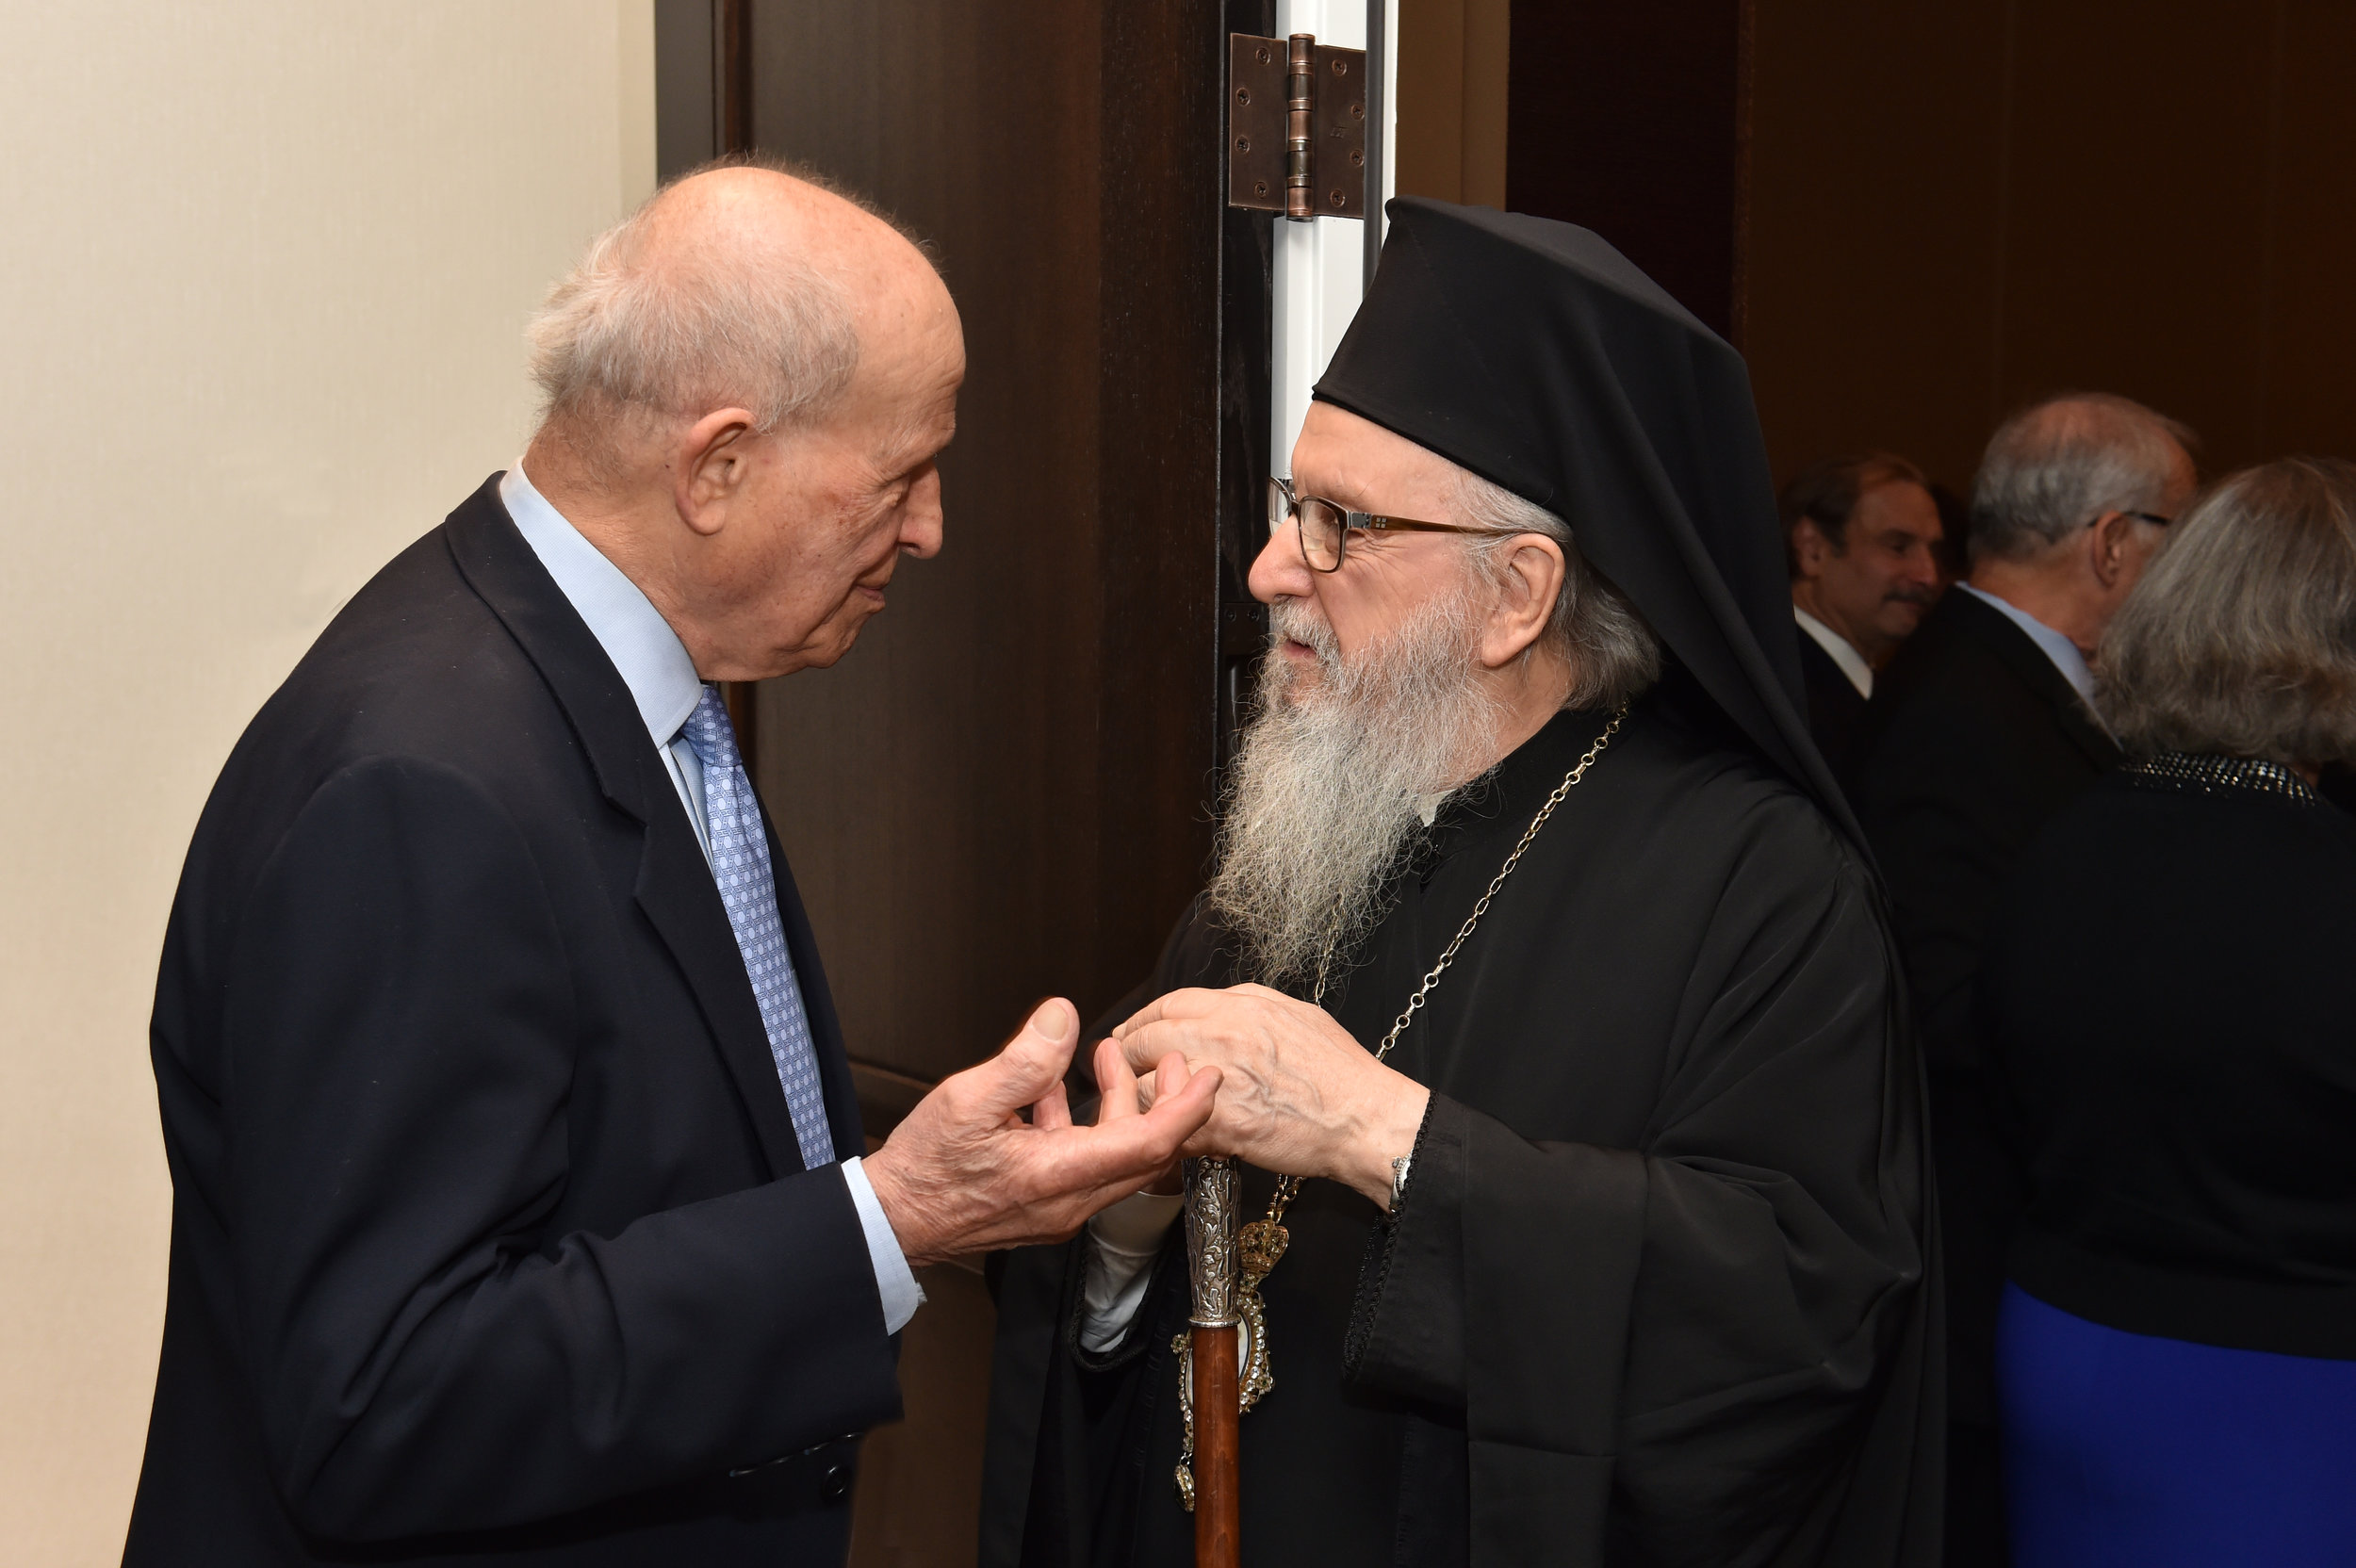 Eugene Rossides and His Eminence Archbishop Demetrios, Geron of America.